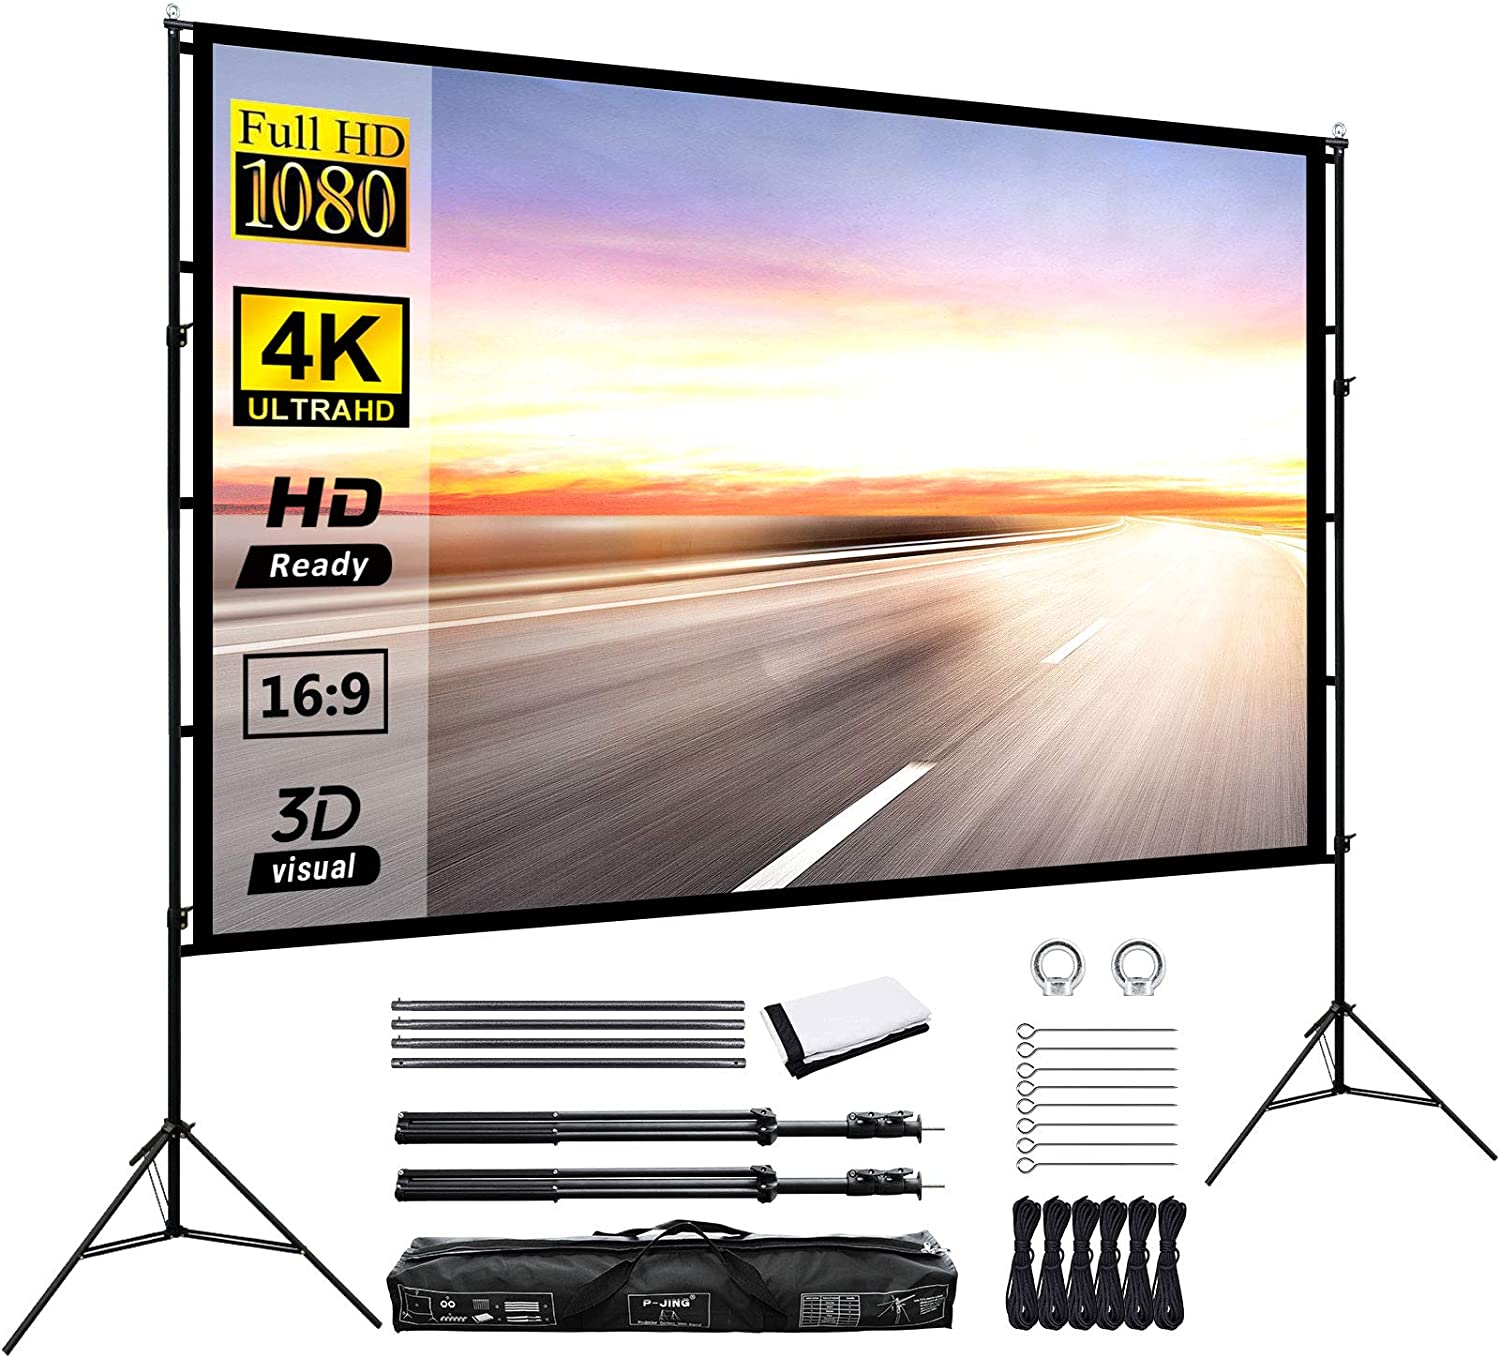 Projector Screen with Stand 120inch Portable Projection Screen 16:9 4K HD Rear Front Projections Movies Screen for Indoor Outdoor Home Theater Backyard Cinema Trave